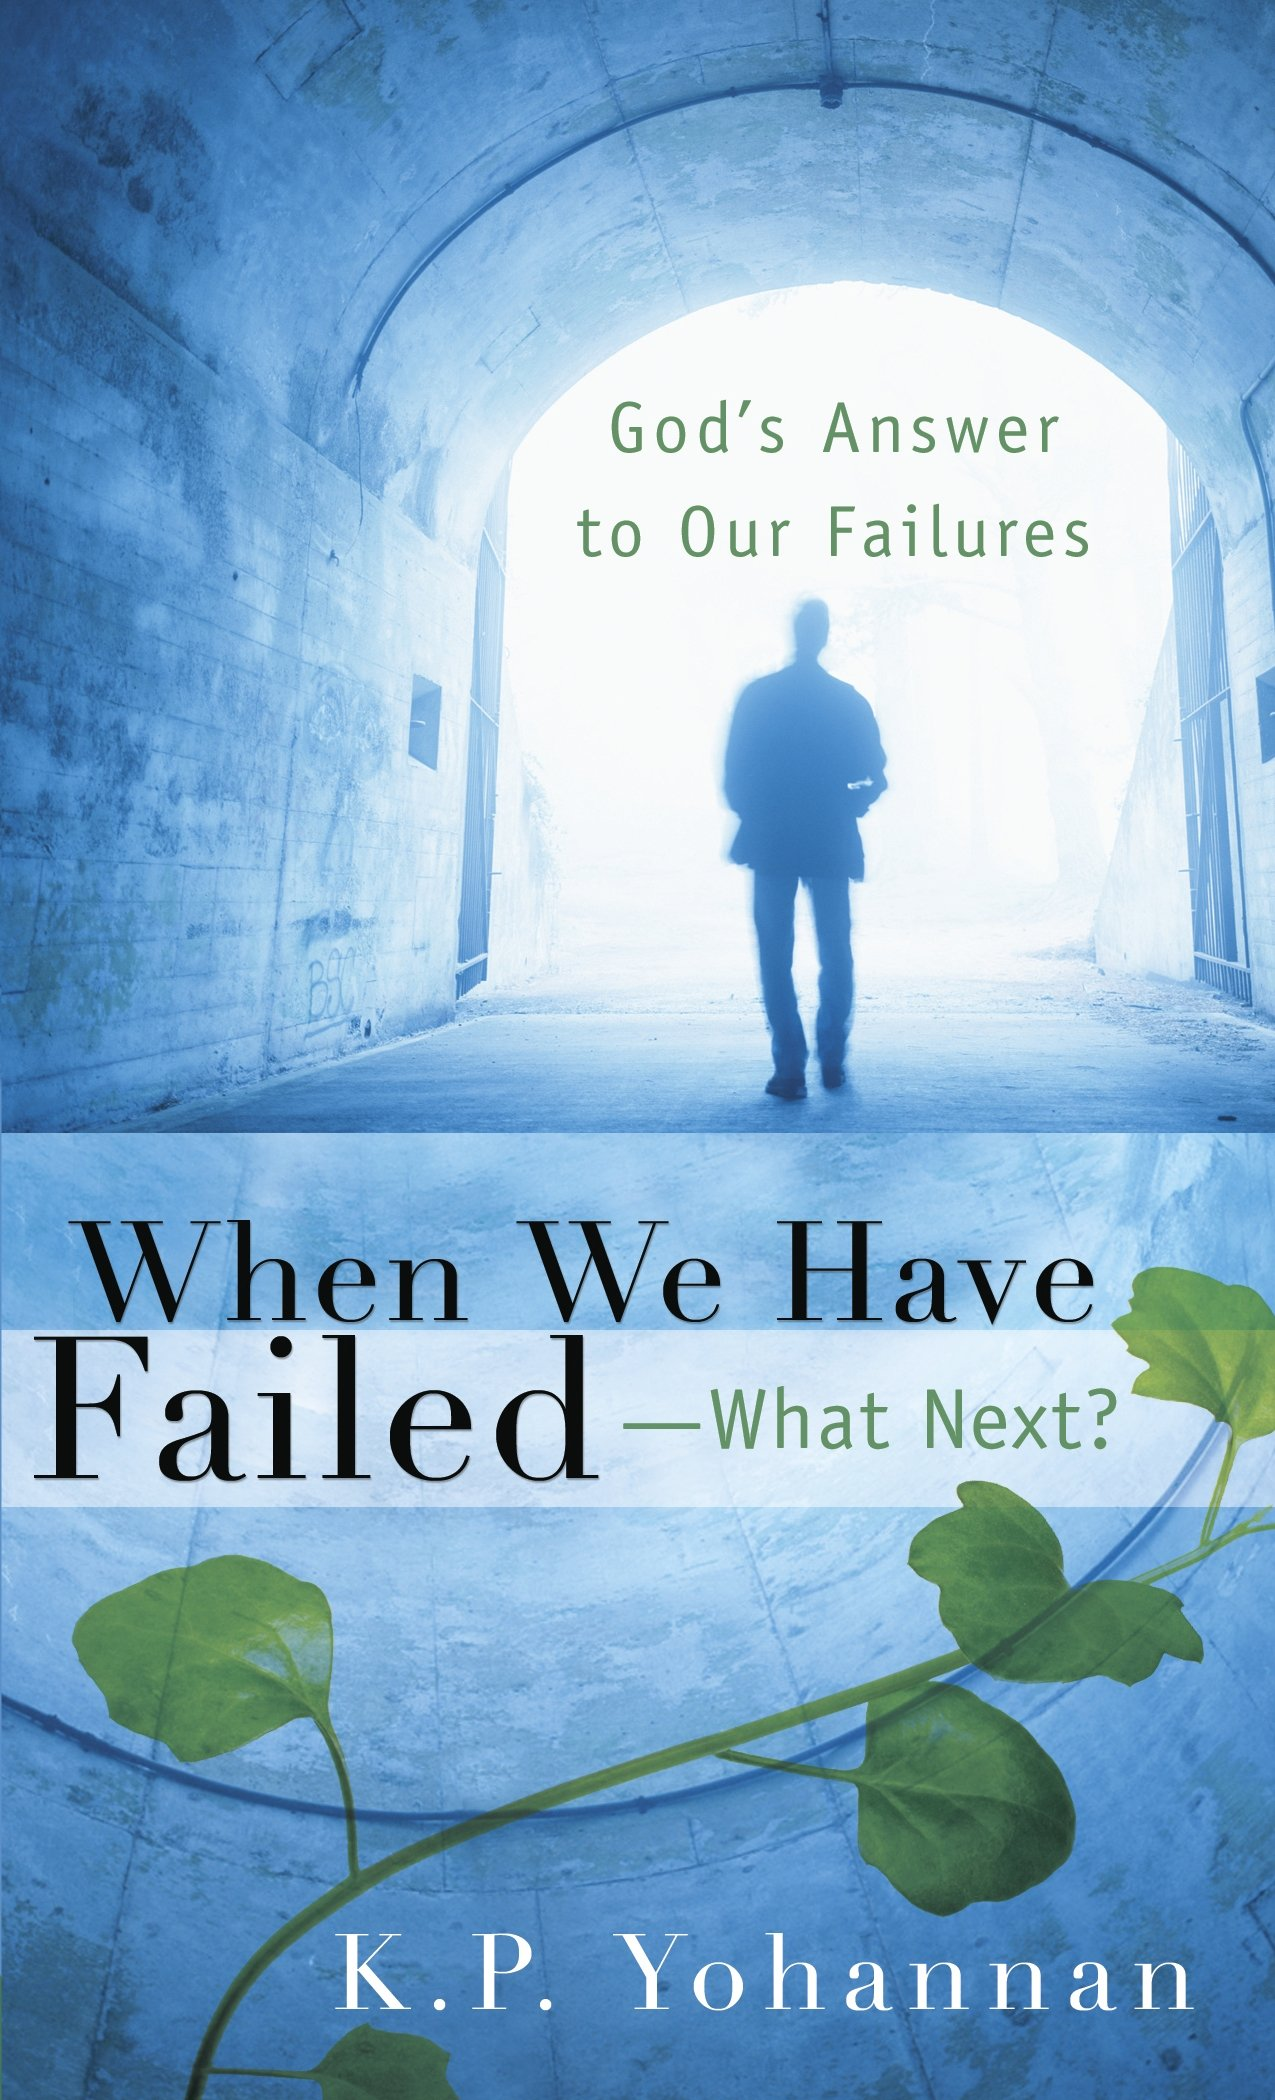 whenwehavefailed-KPYohannanbooks